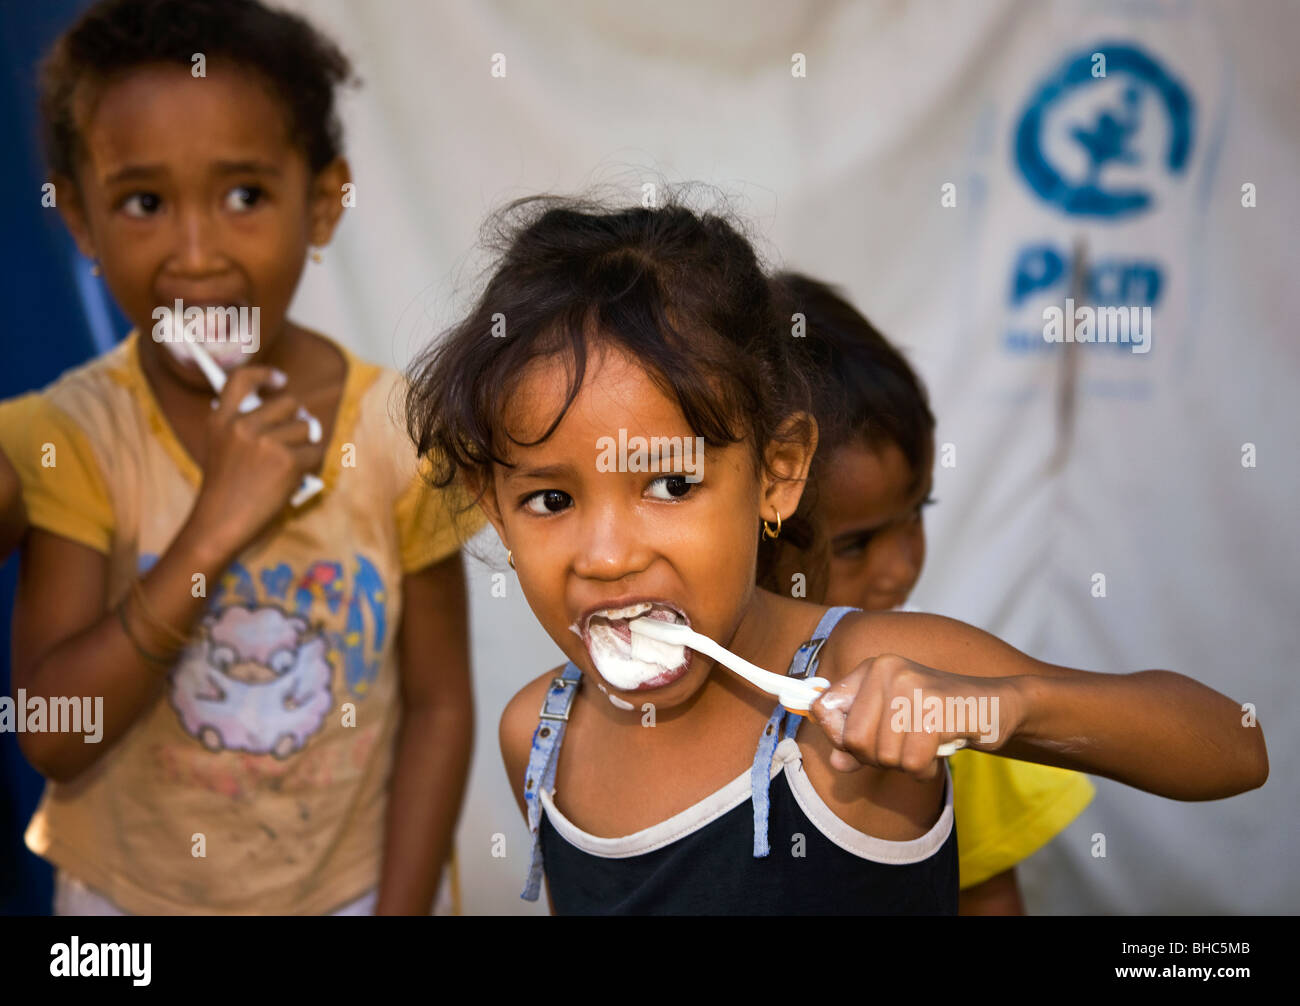 Cleaning teeth PLAN provide water sanitation toothbrushes toothpaste for children at IDP displaced persons camp Stock Photo